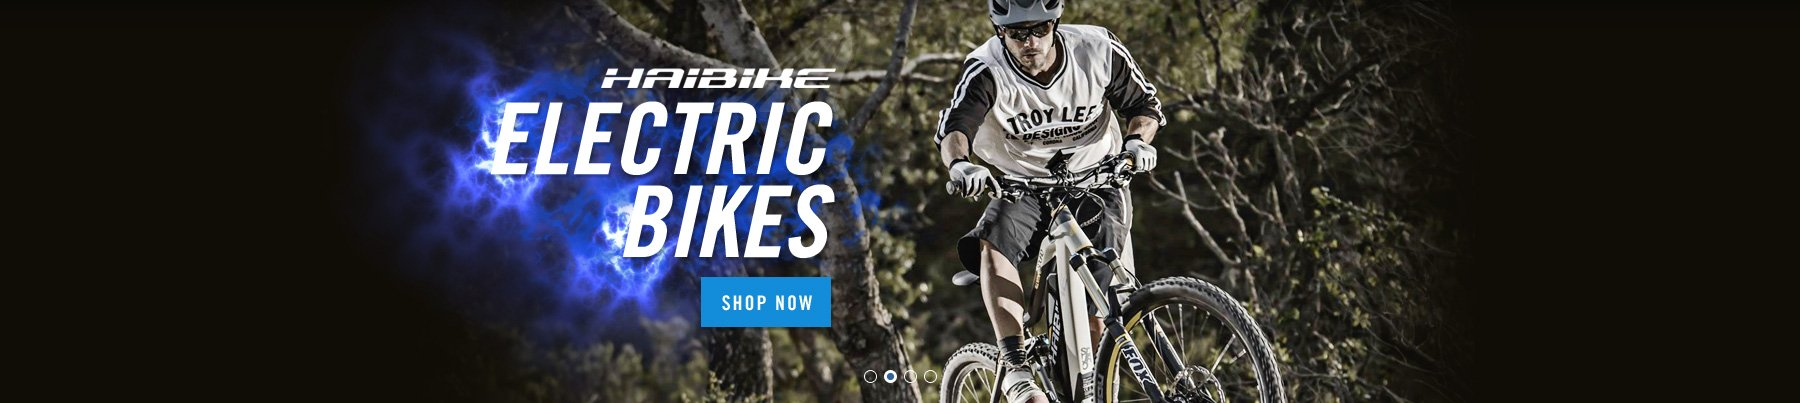 Electric Bikes - Shop Now